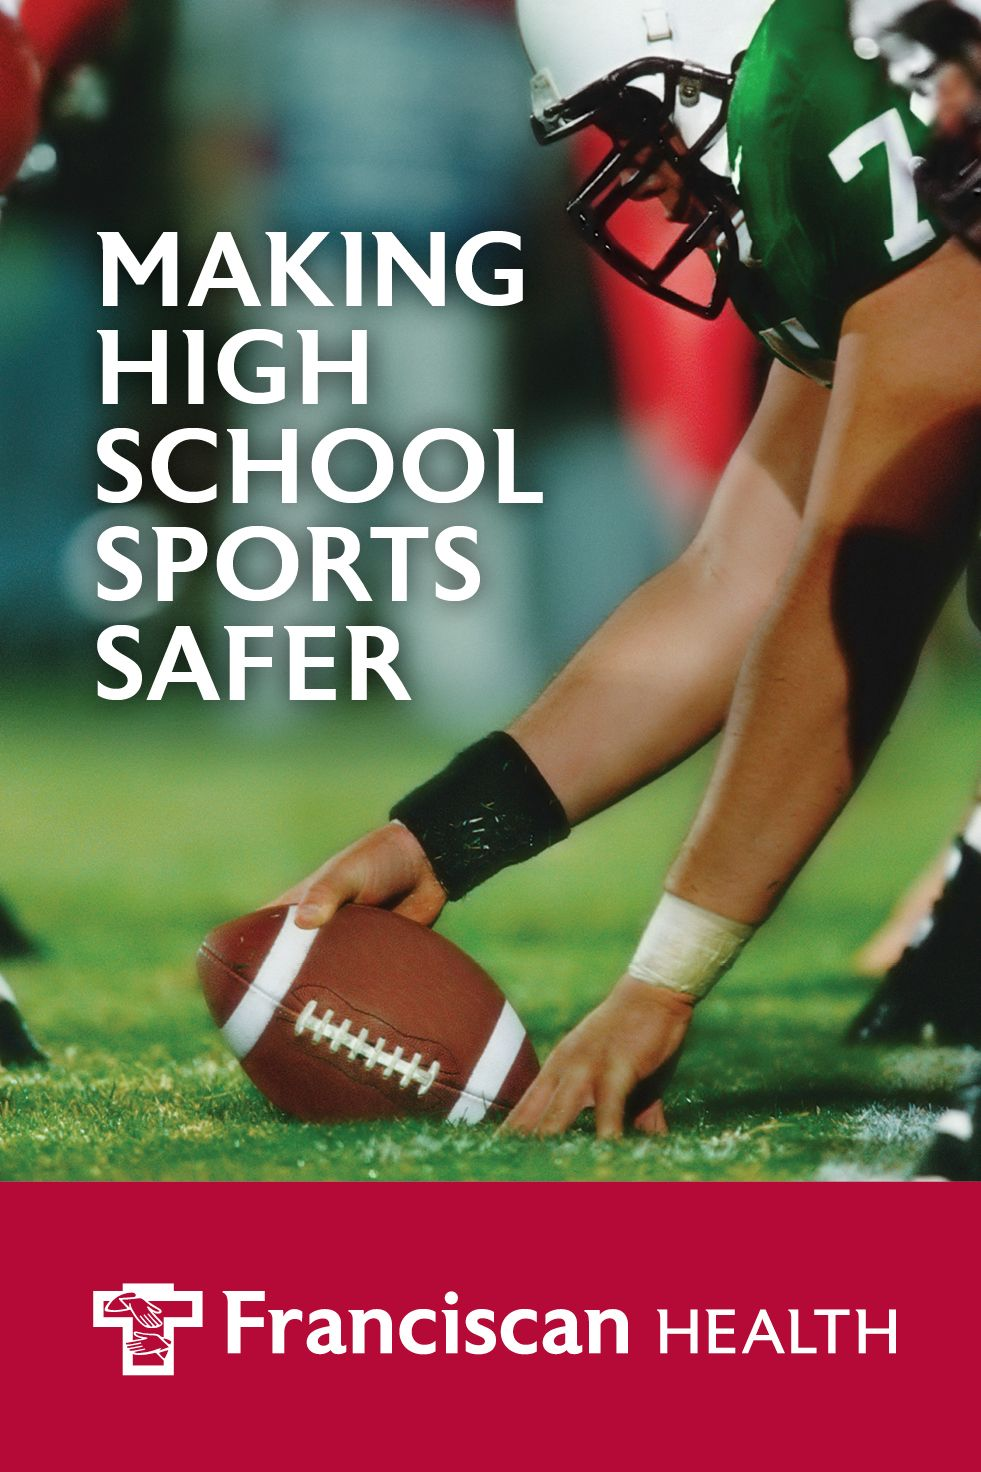 High school sports injuries and deaths may have a high